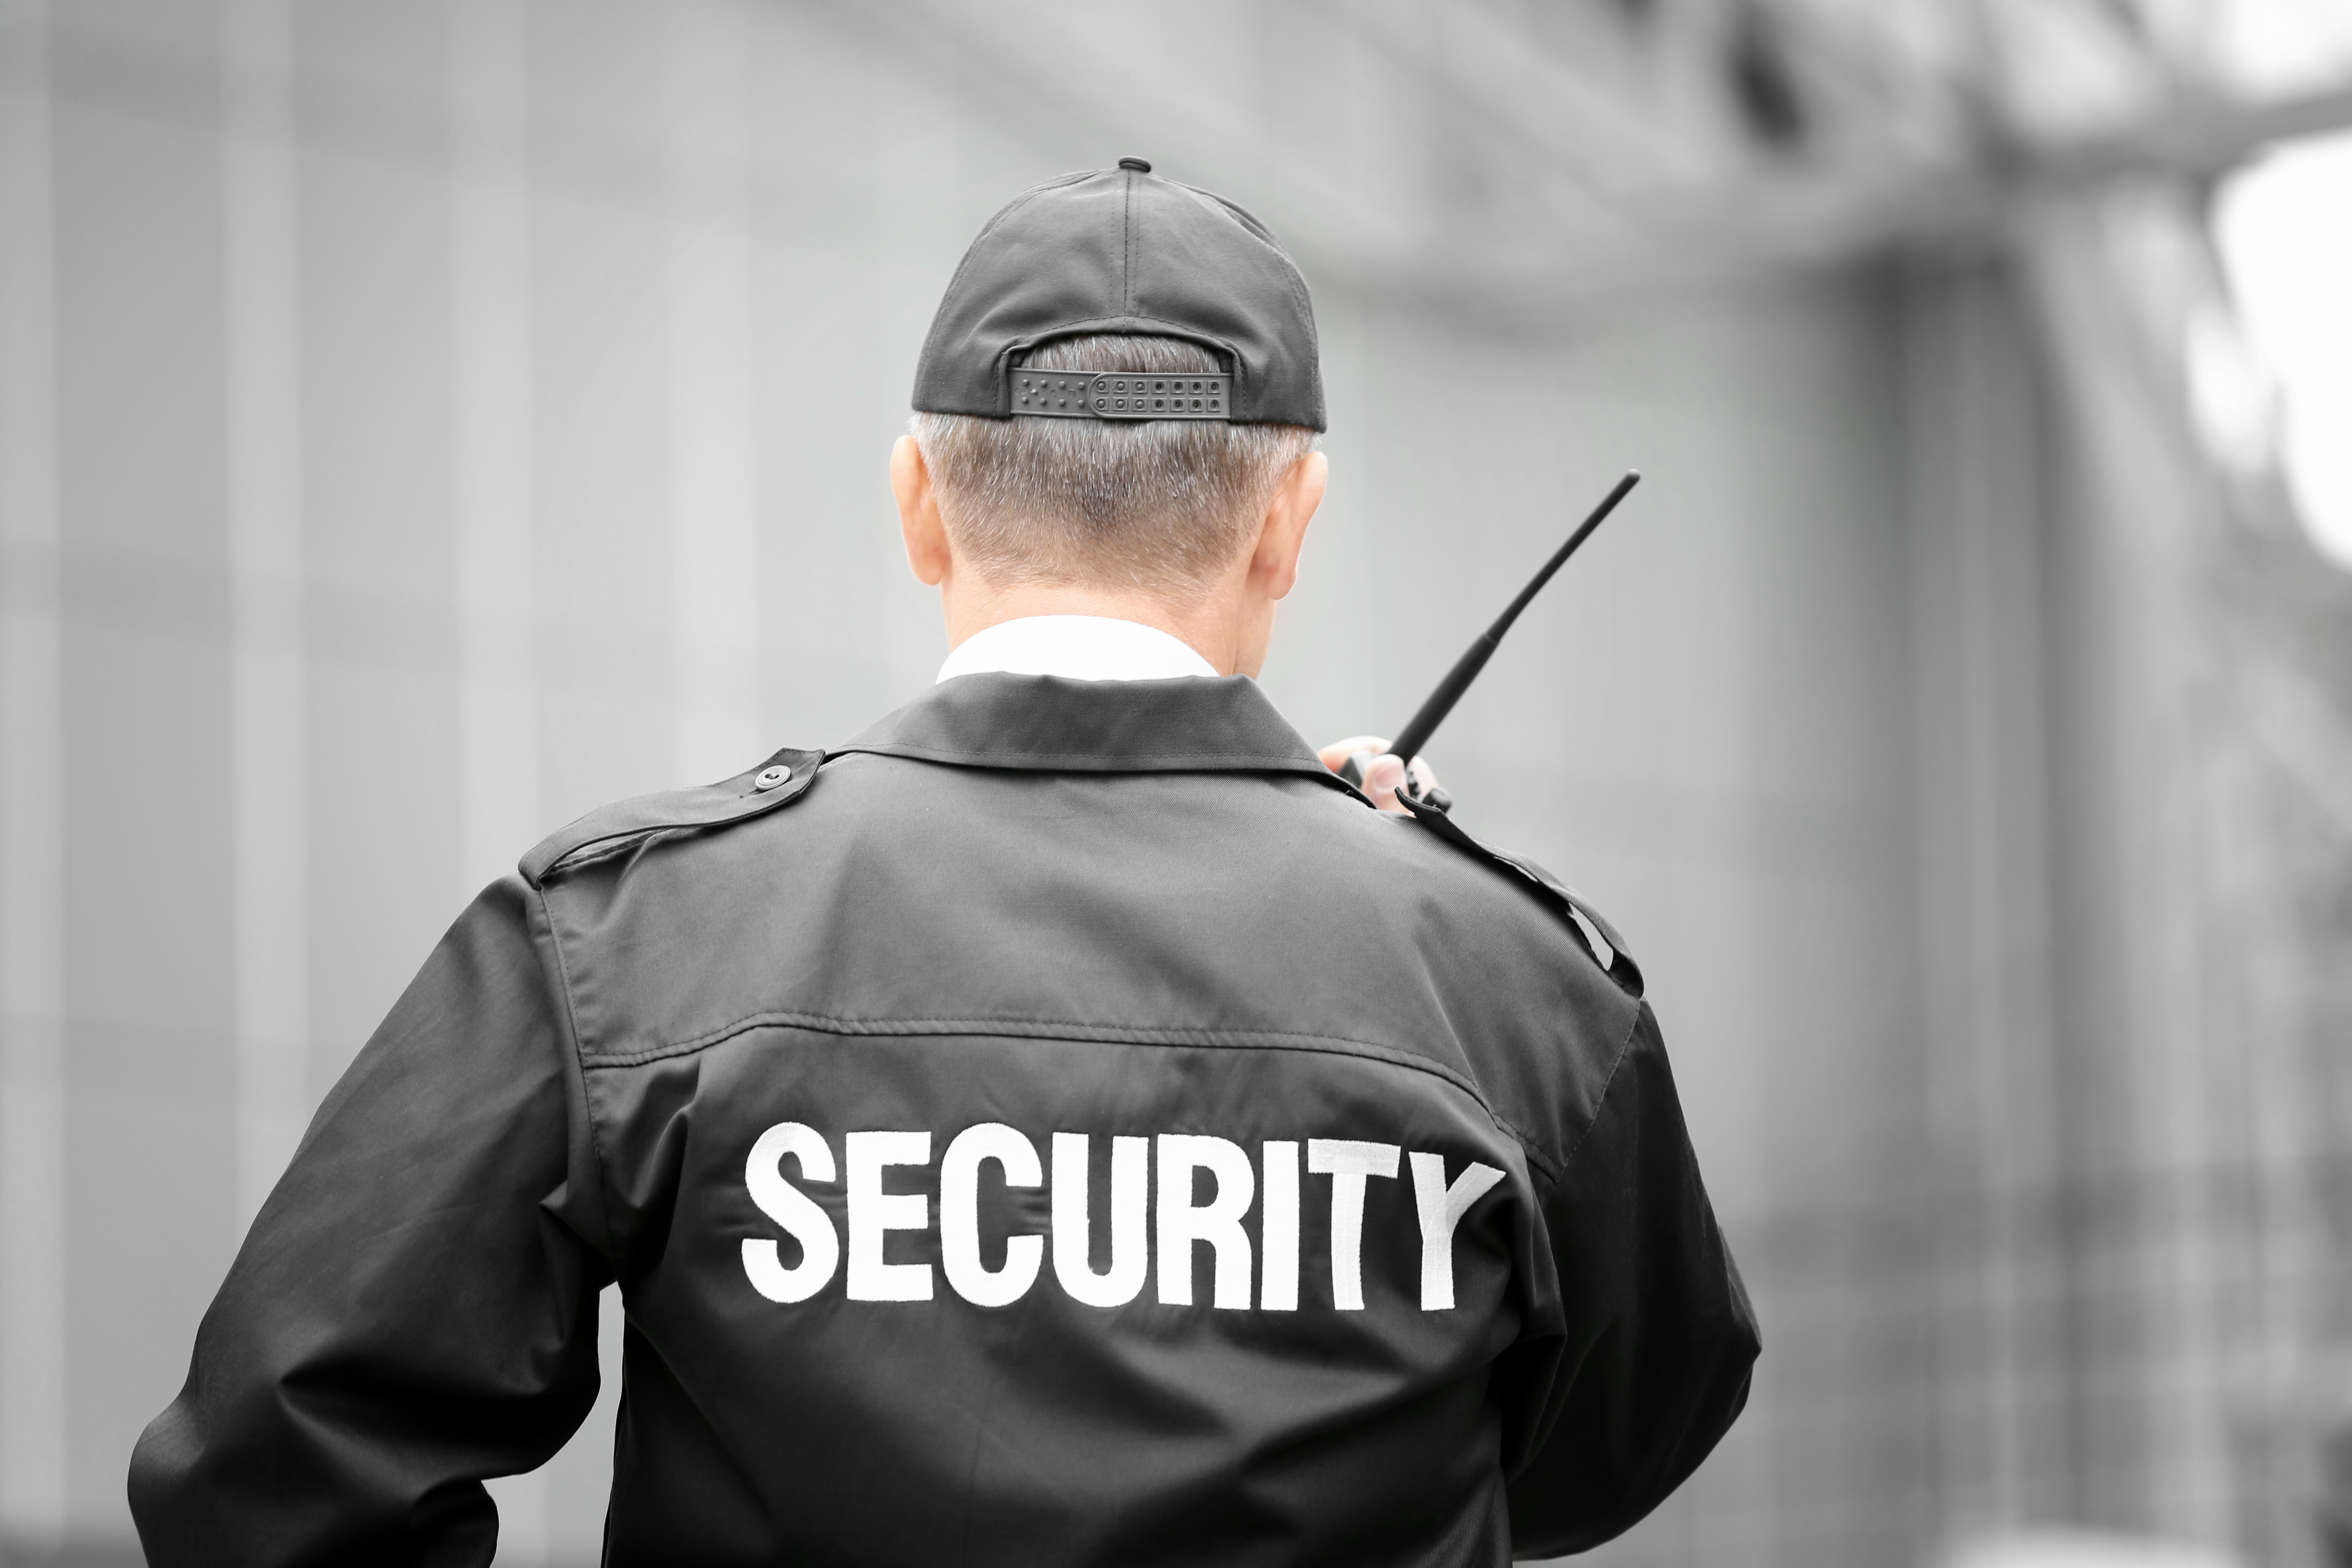 Event Security, Party, Celebration, Secure, Protection